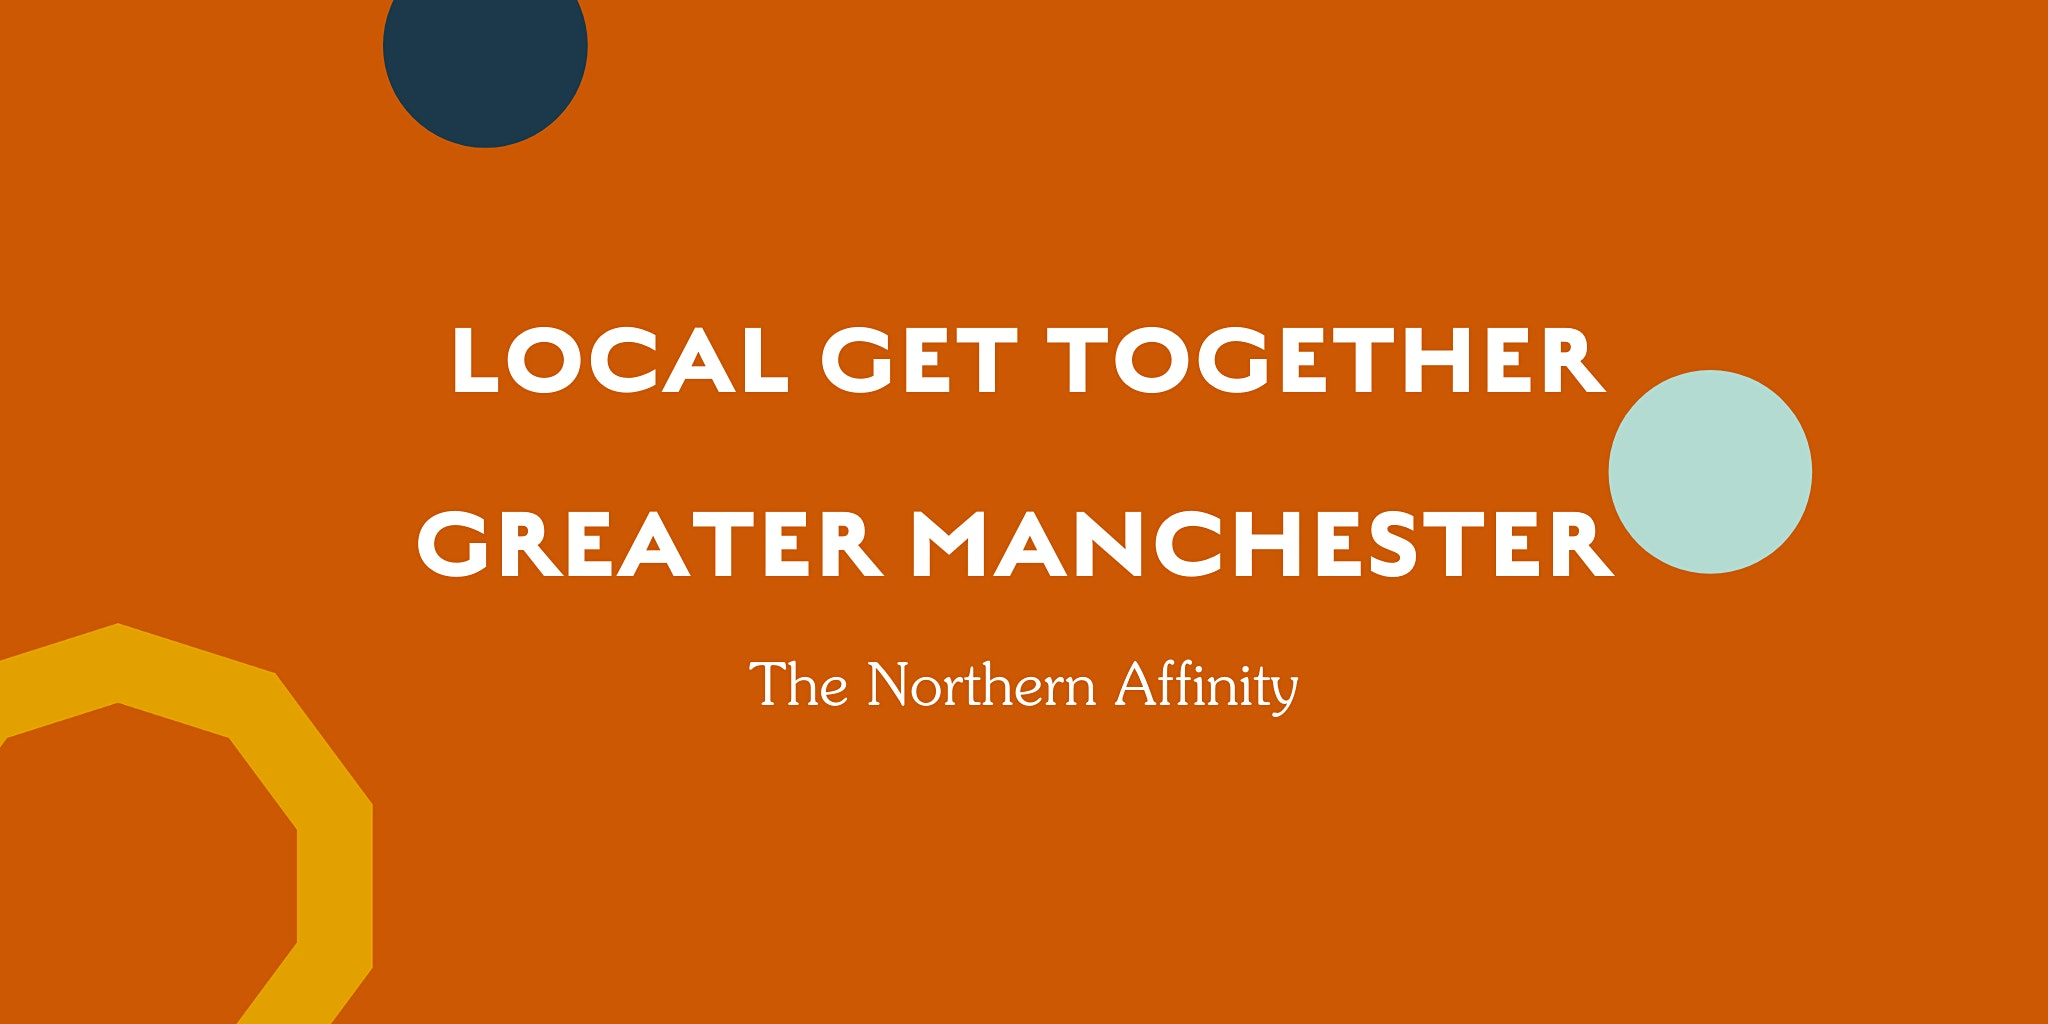 The Northern Affinity Local Get Together – Greater Manchester